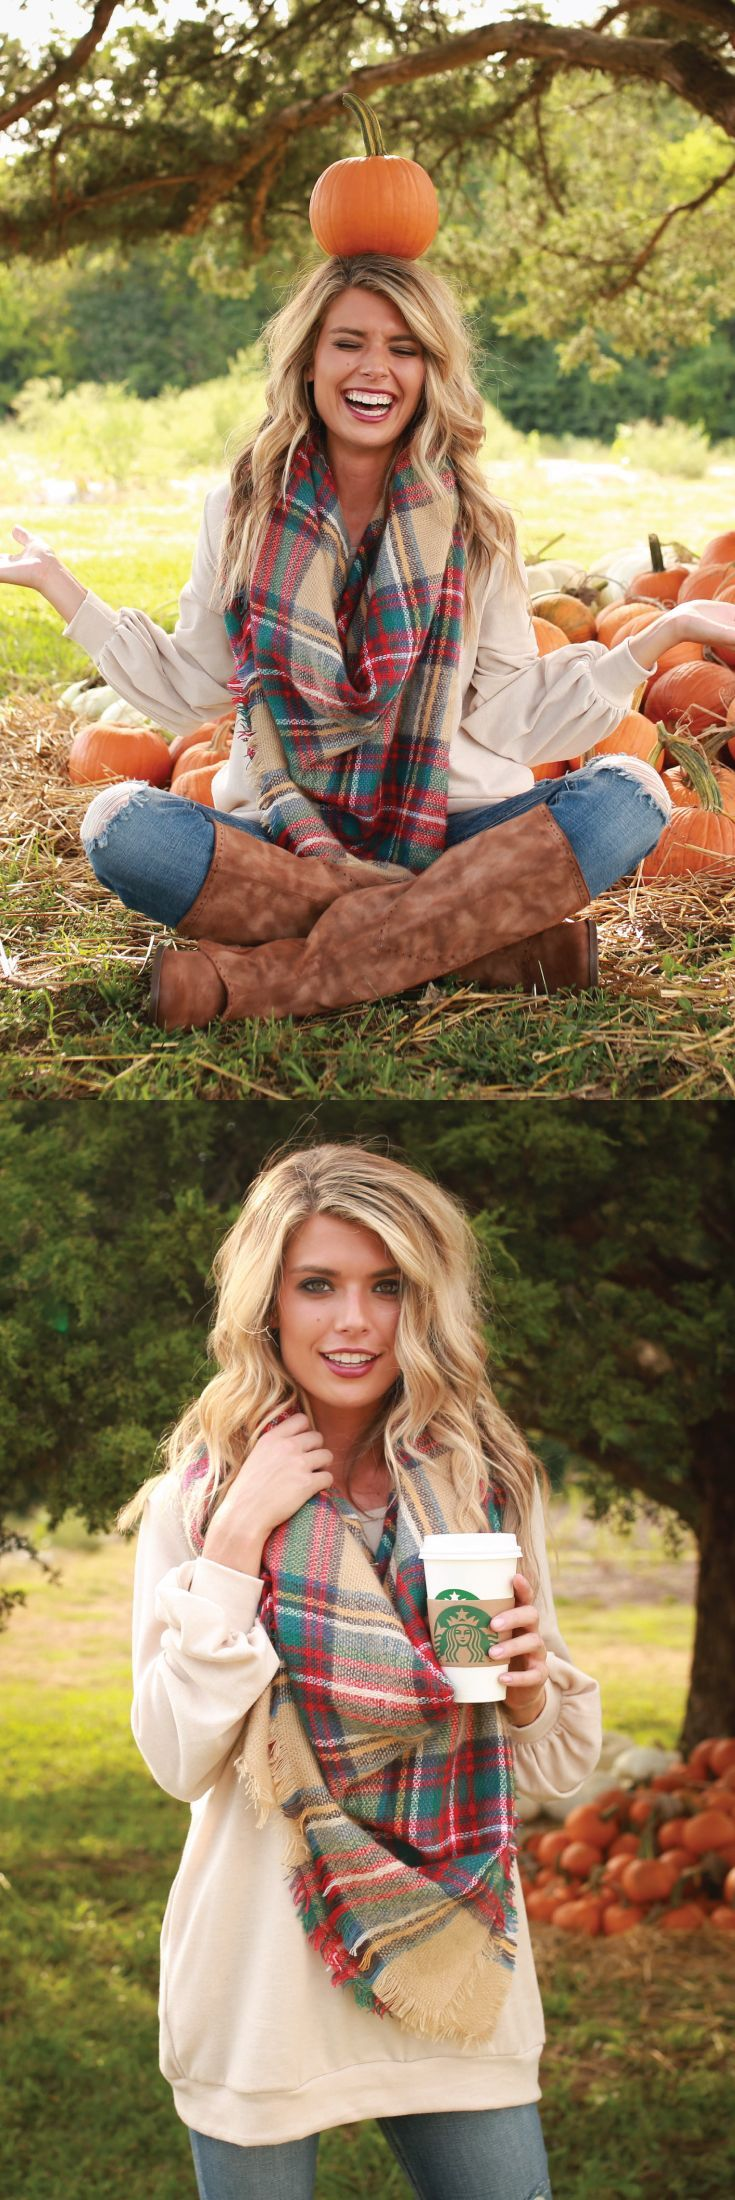 Fall in LOVE with our favorite Brooklyn Tunic. She's perfect for PSL sipping and strolls through the pumpkin patch!